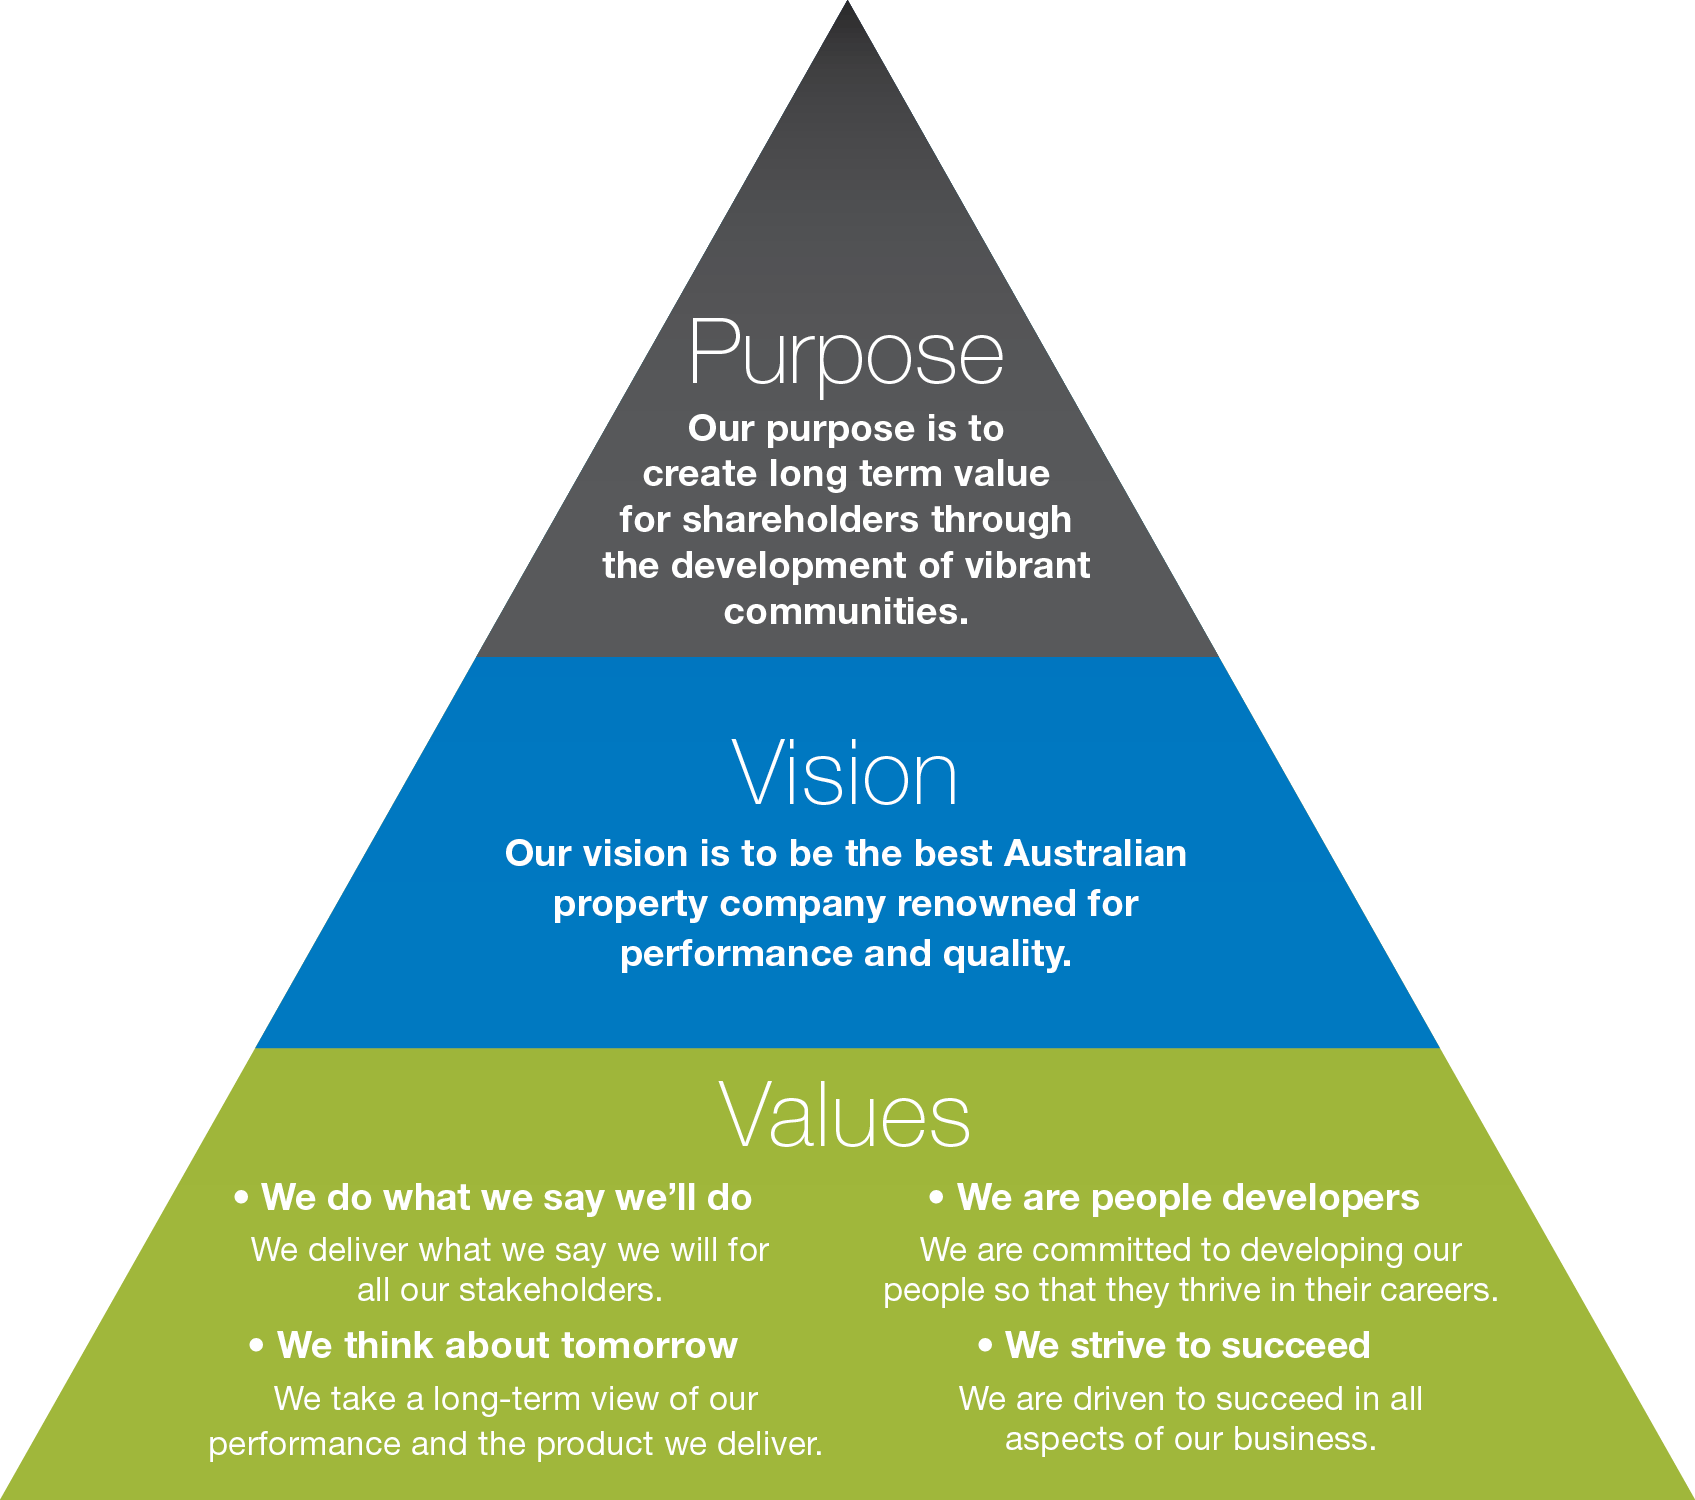 Cedar Woods Strategy Purpose Vision Values